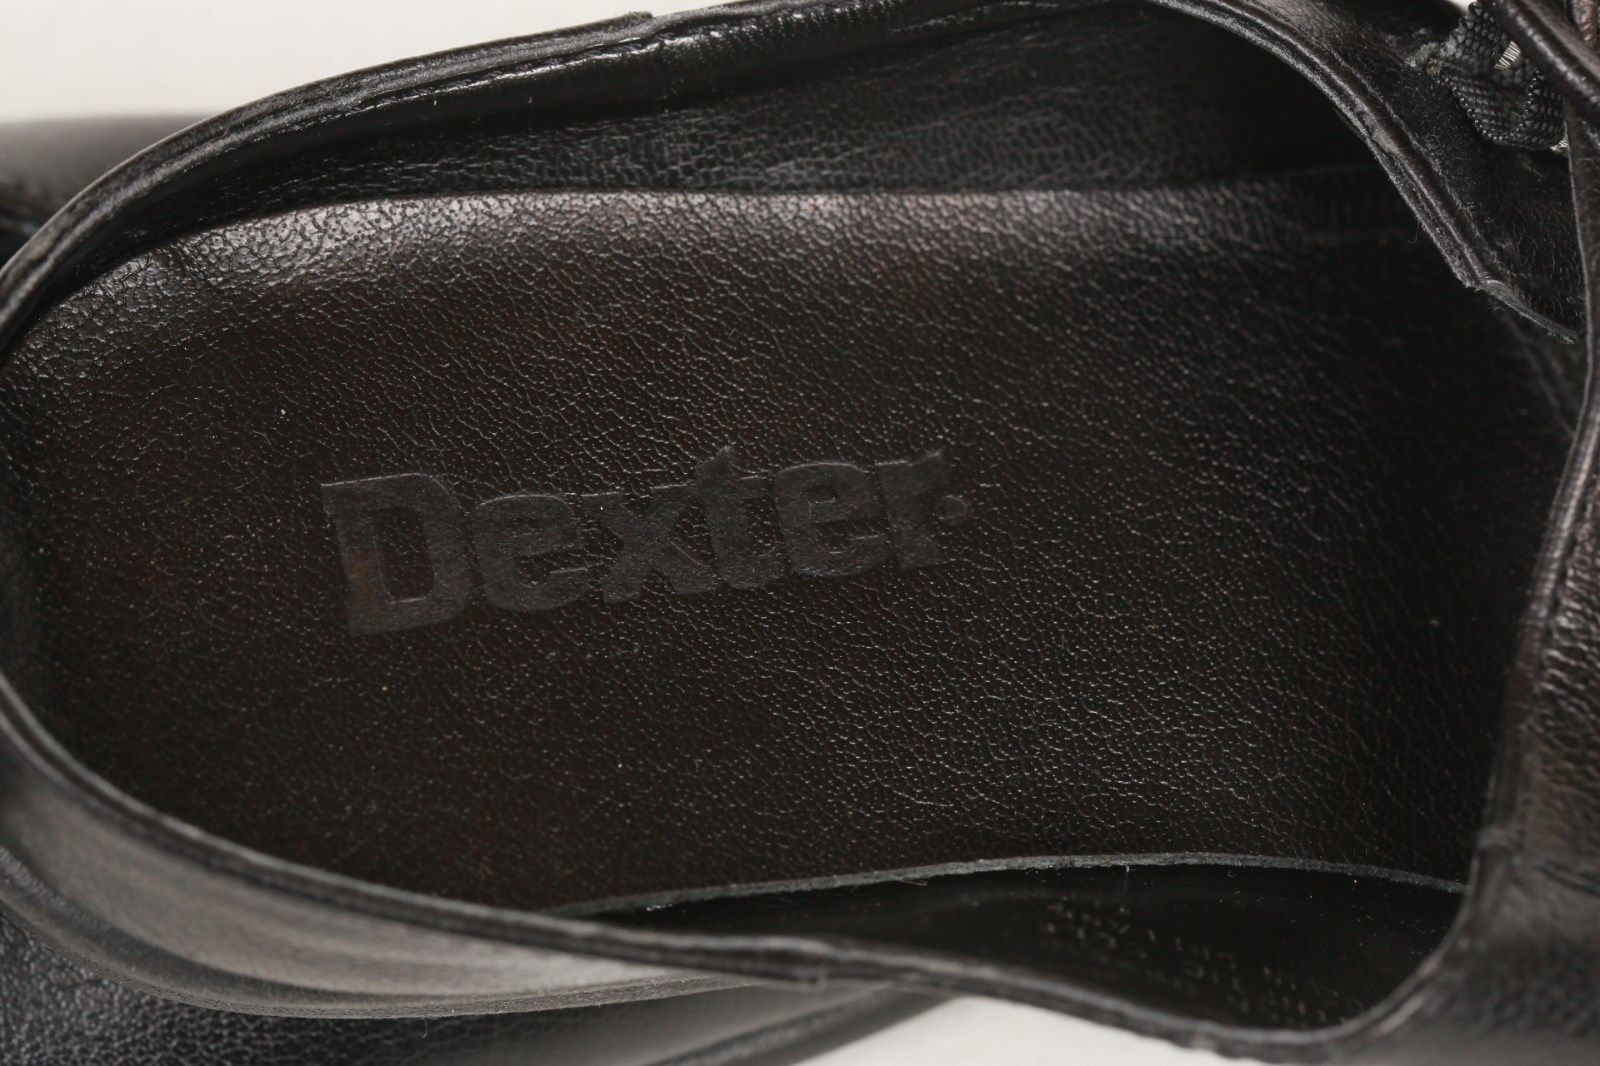 DEXTER Women's Black Leather Mules Slip on Clogs Mary Janes Shoes 6 1/2 B New